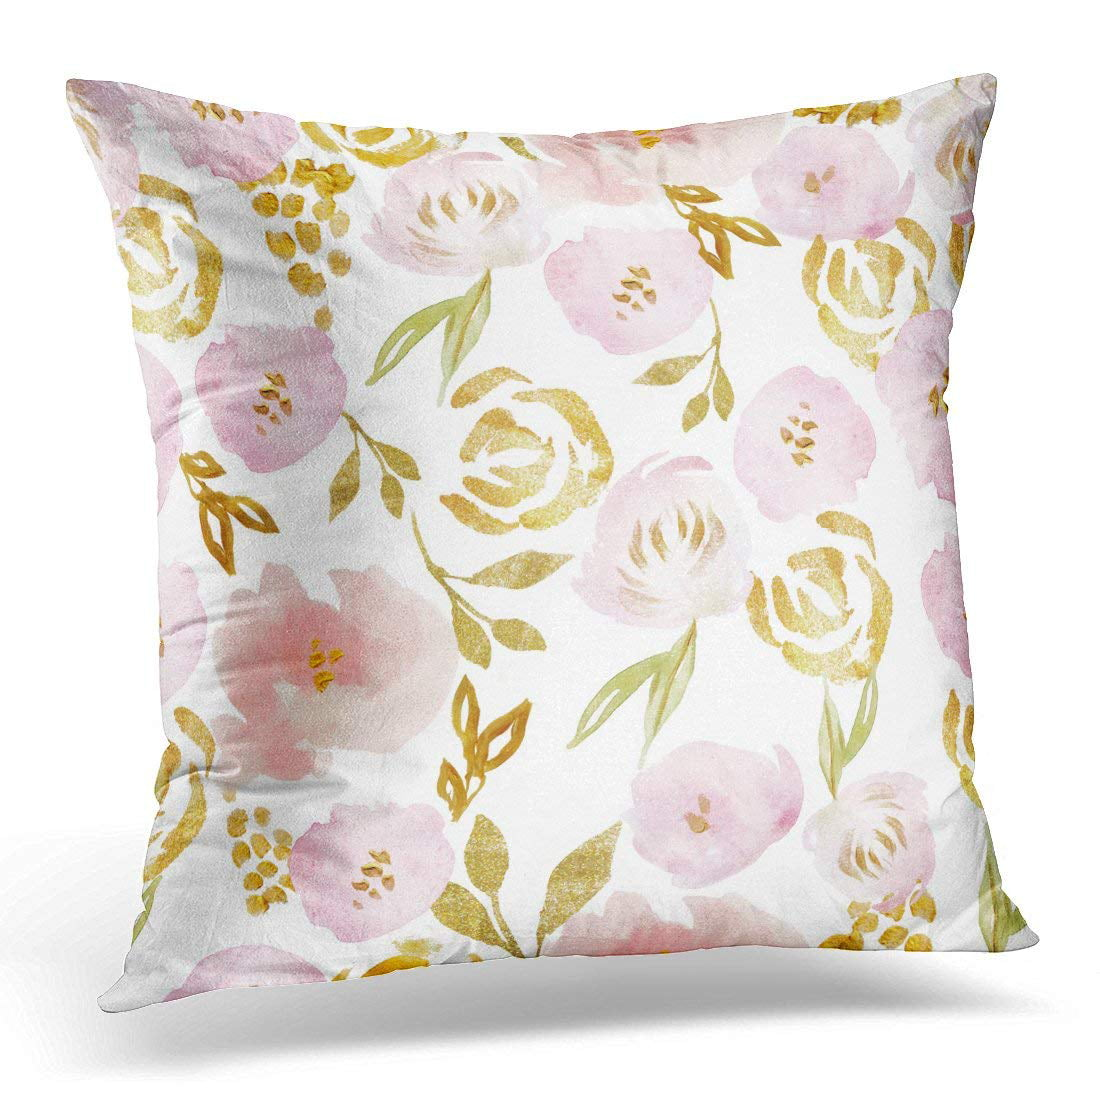 Pillow and white flower